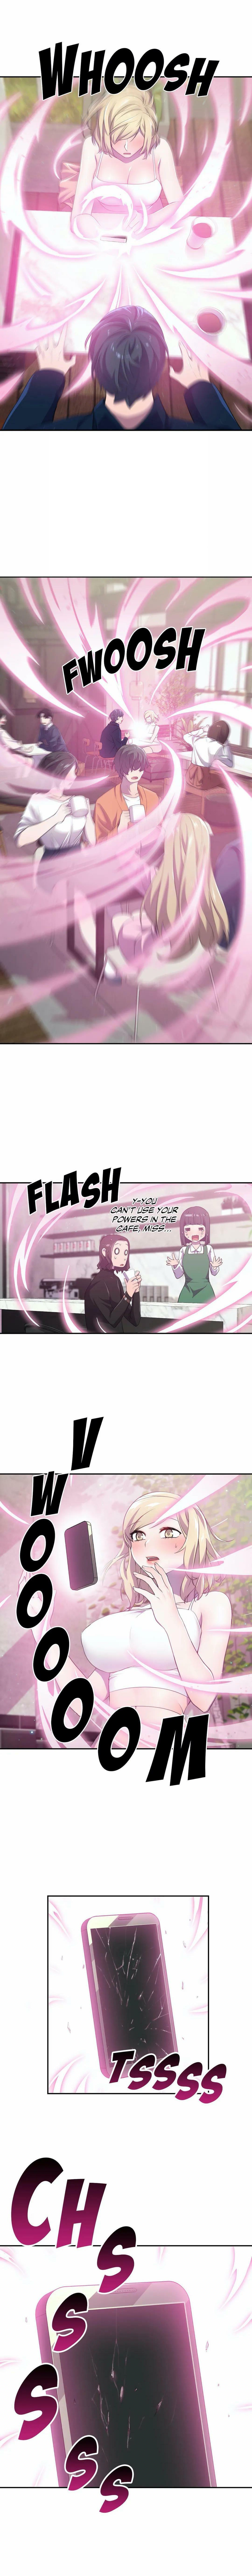 HERO MANAGER Ch. 1-11 45